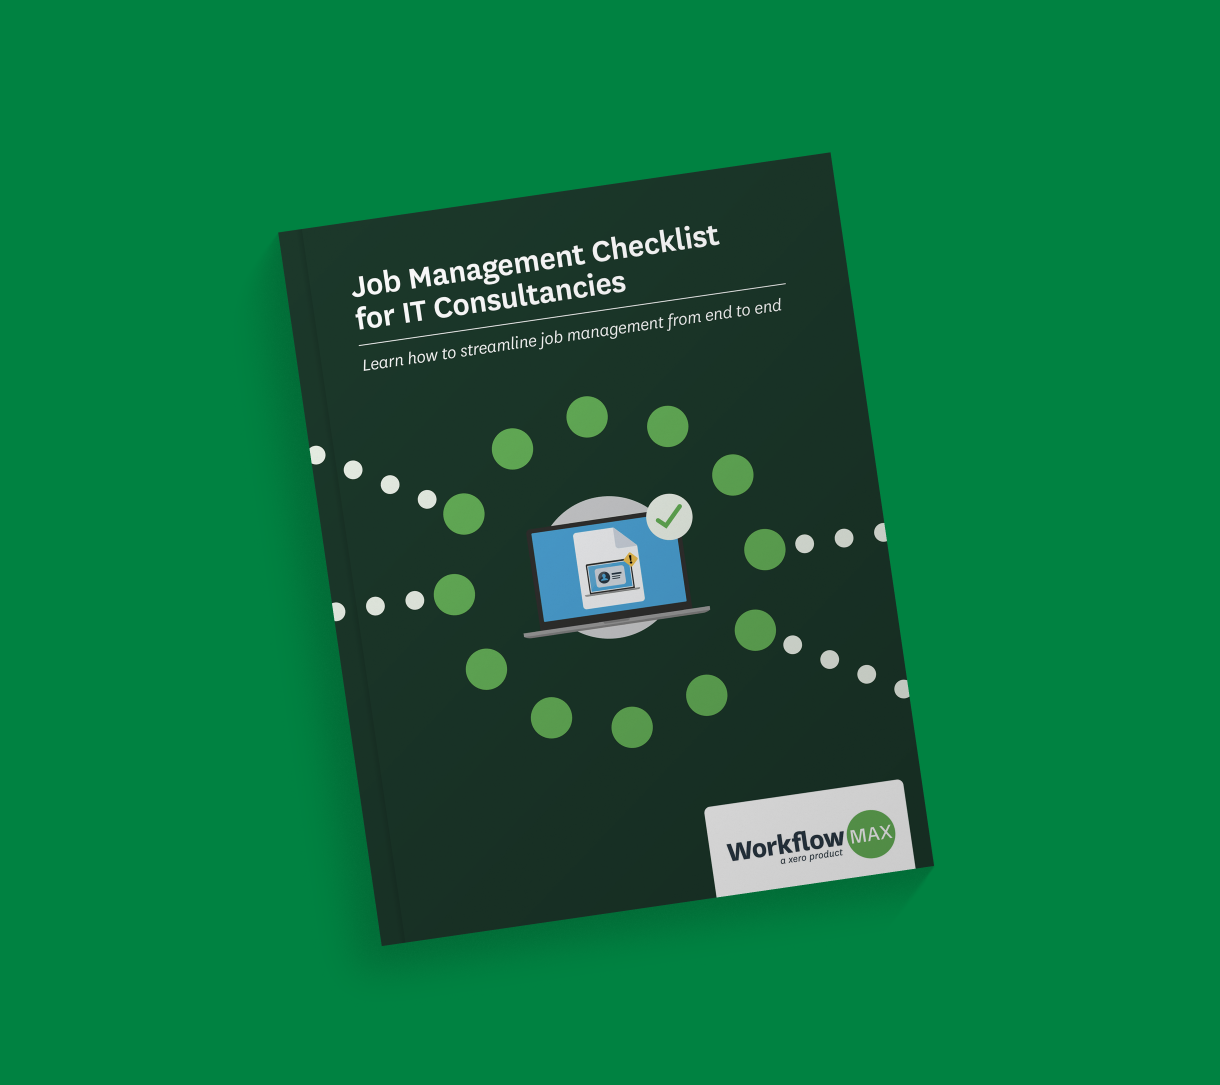 Free download: Job Management Checklist for IT Consultancies